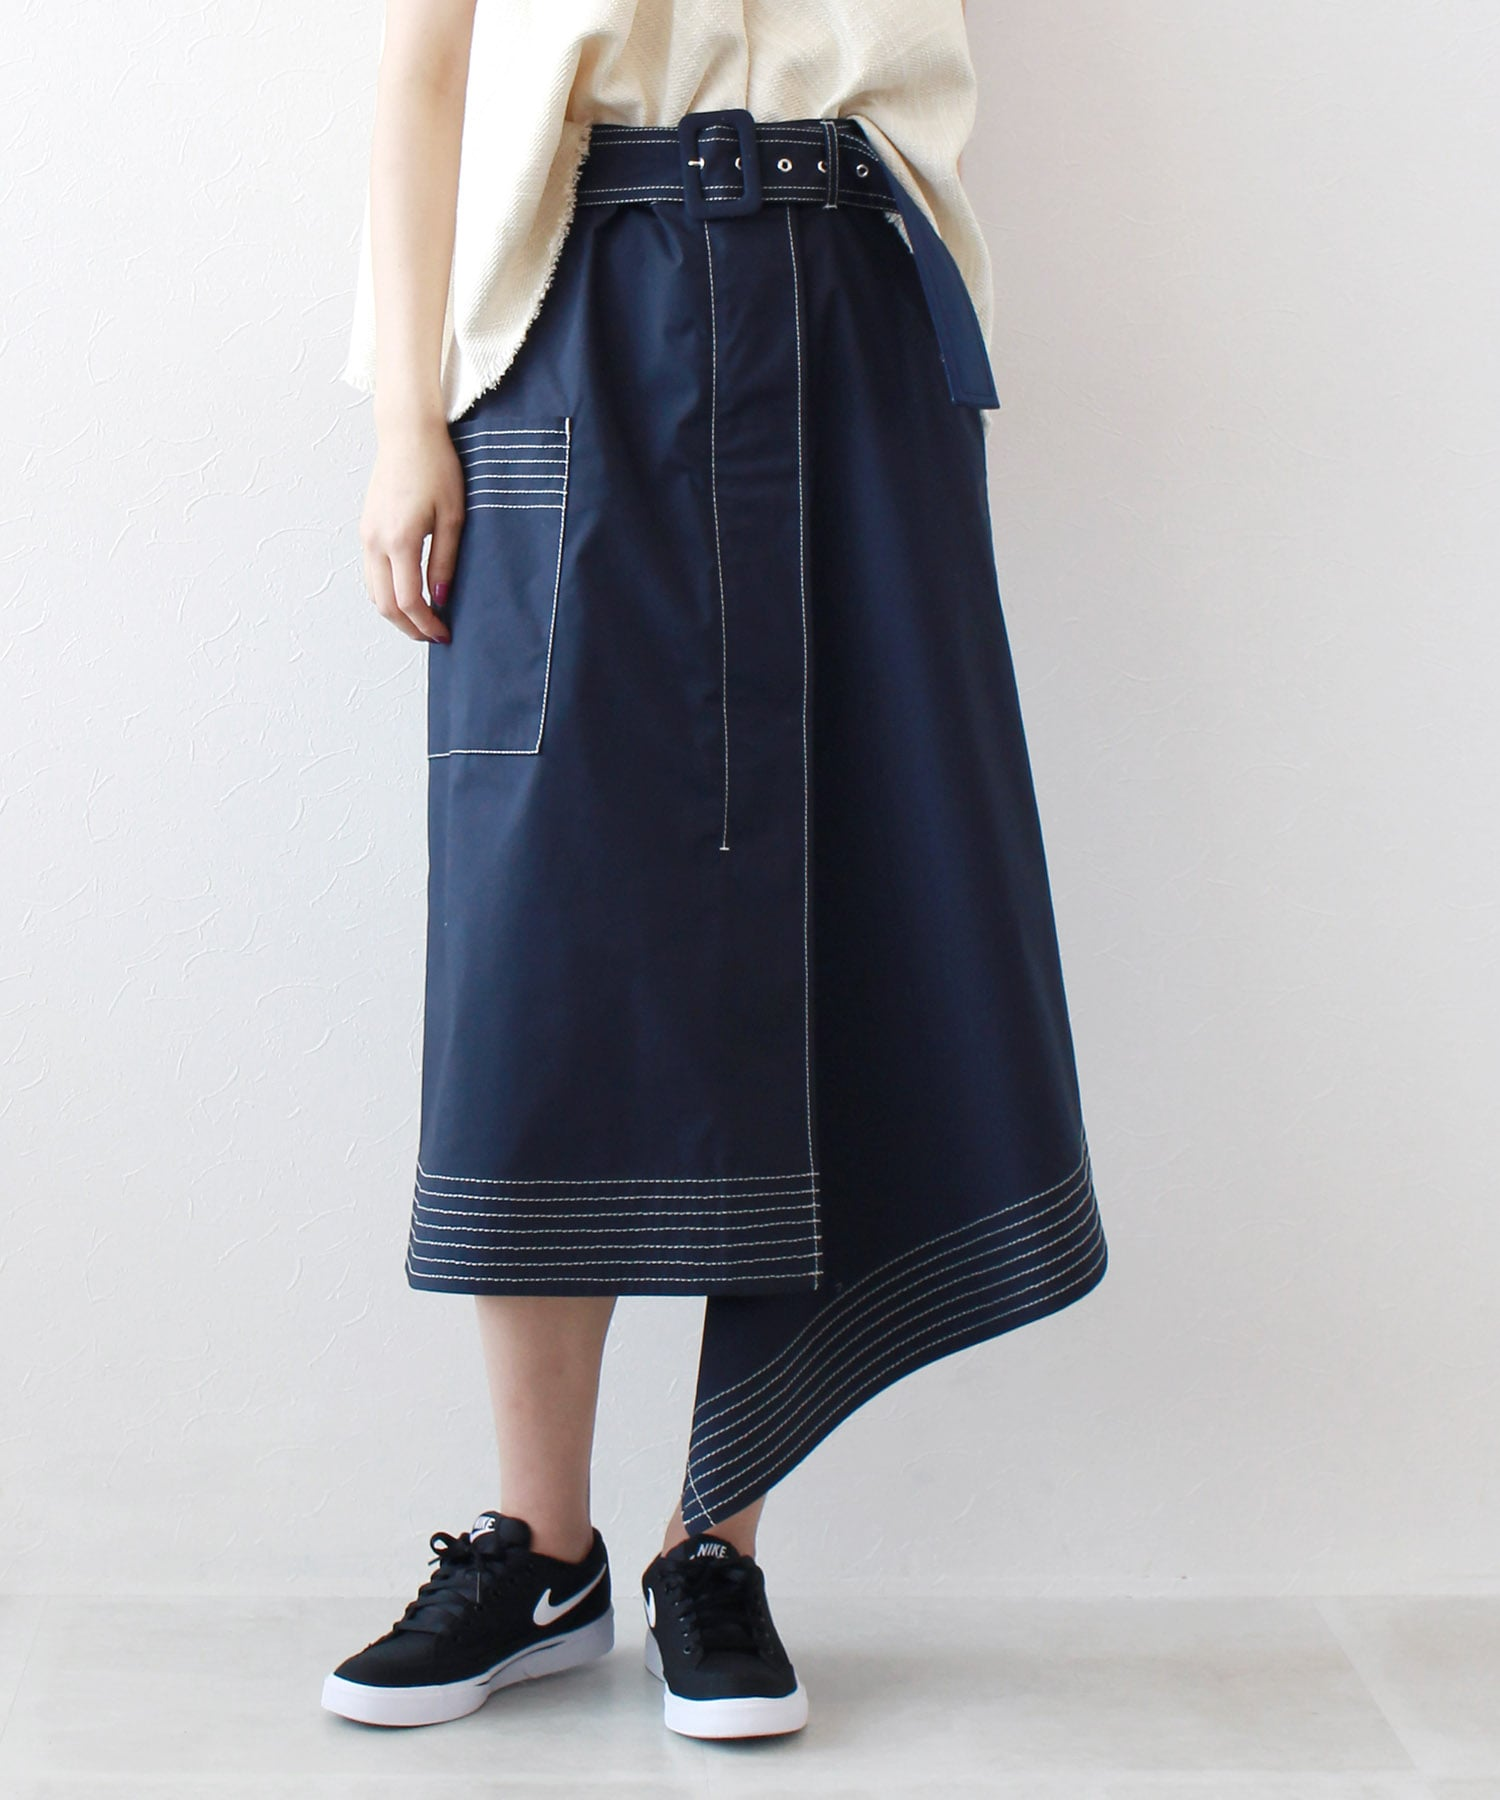 stetch asymetric layered skirt